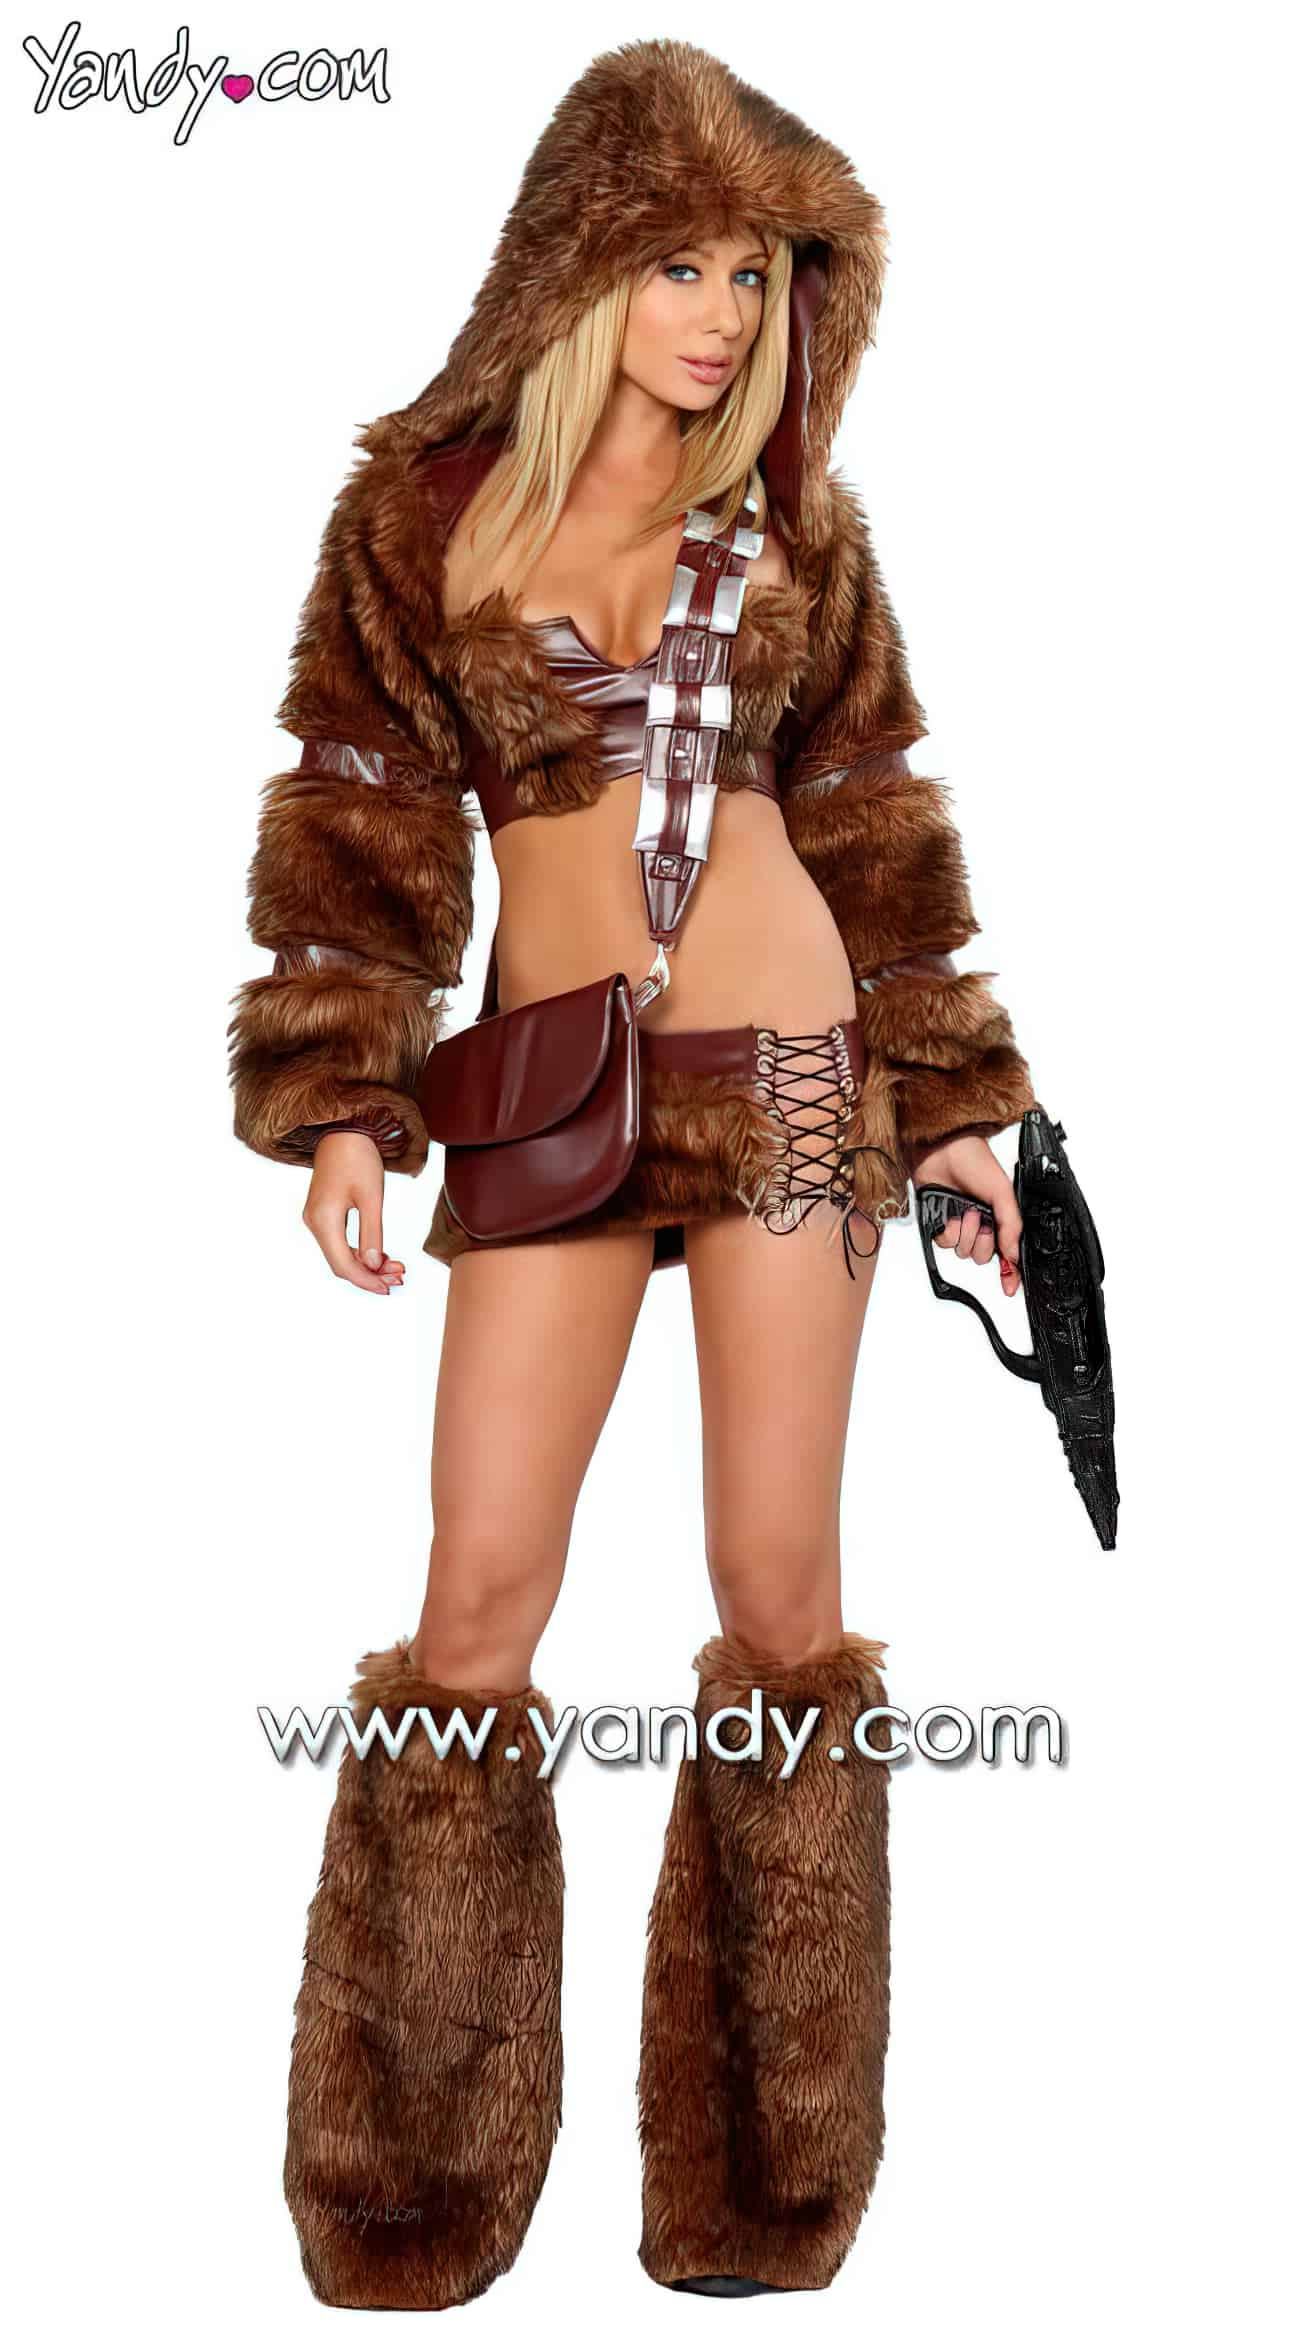 Sexy Chewbacca Costume3 upscaled